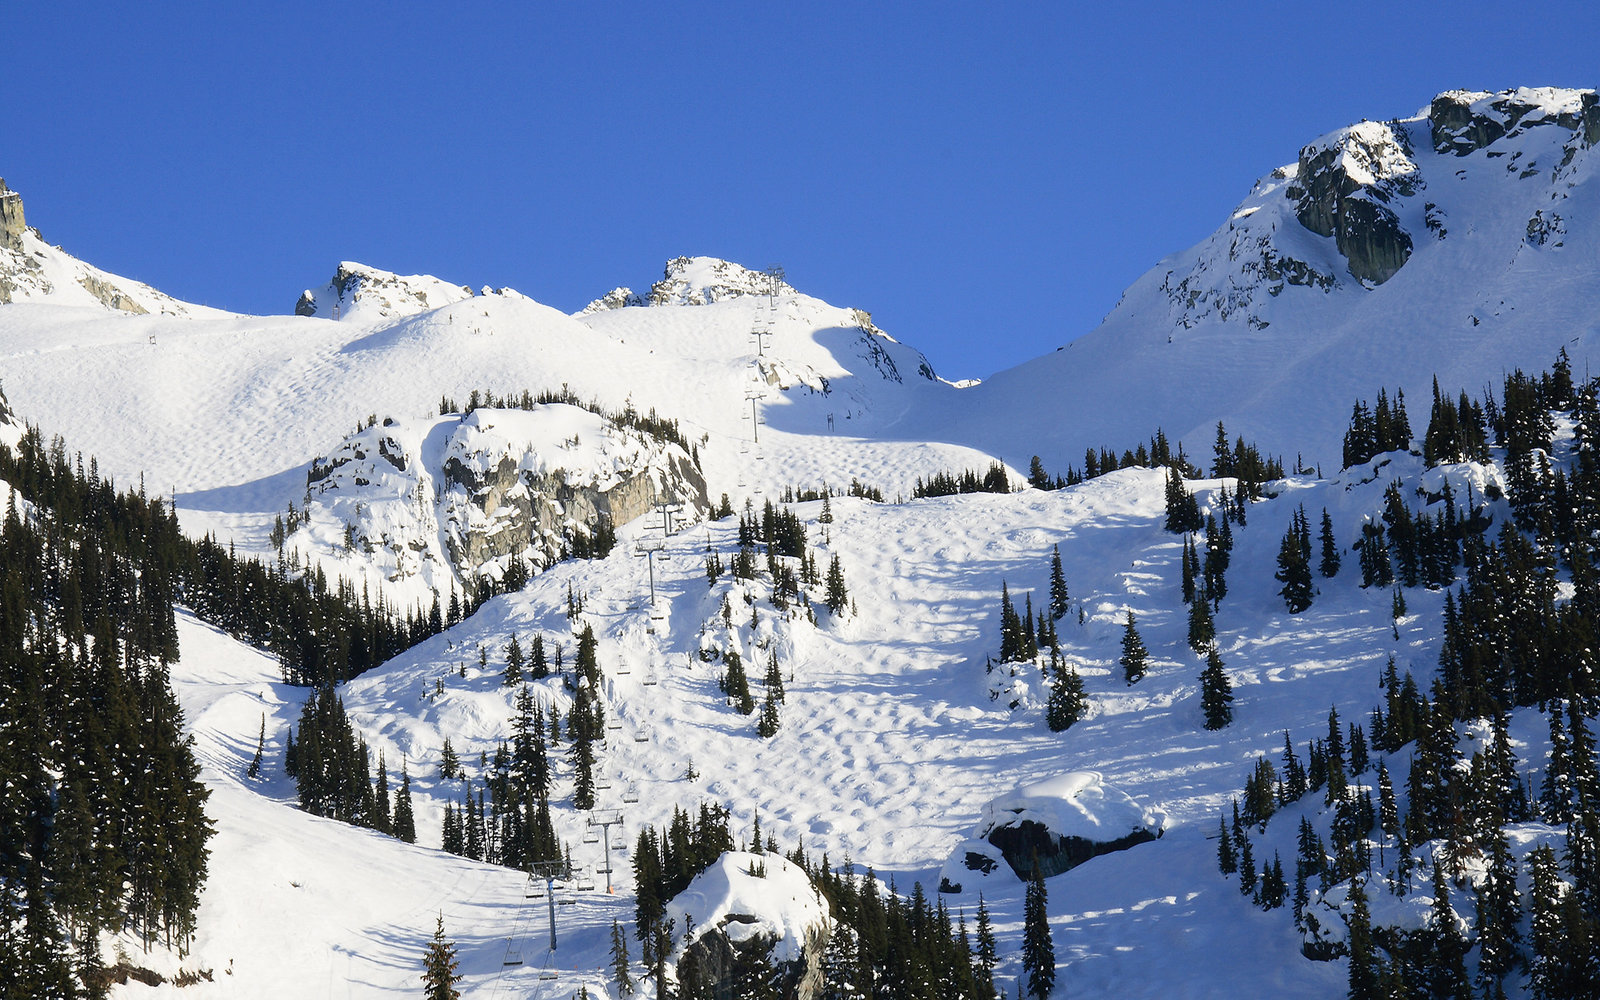 (GERMANY OUT) Canada British Columbia - Blackcomb Mountain, Whistler / Blackcomb, Glacier Express Chairlift, by Glacier Creek Lodge, 2010 Winter Olympic Games, North Americas biggest Ski Resort.  (Photo by Brühl/ullstein bild via Getty Images)